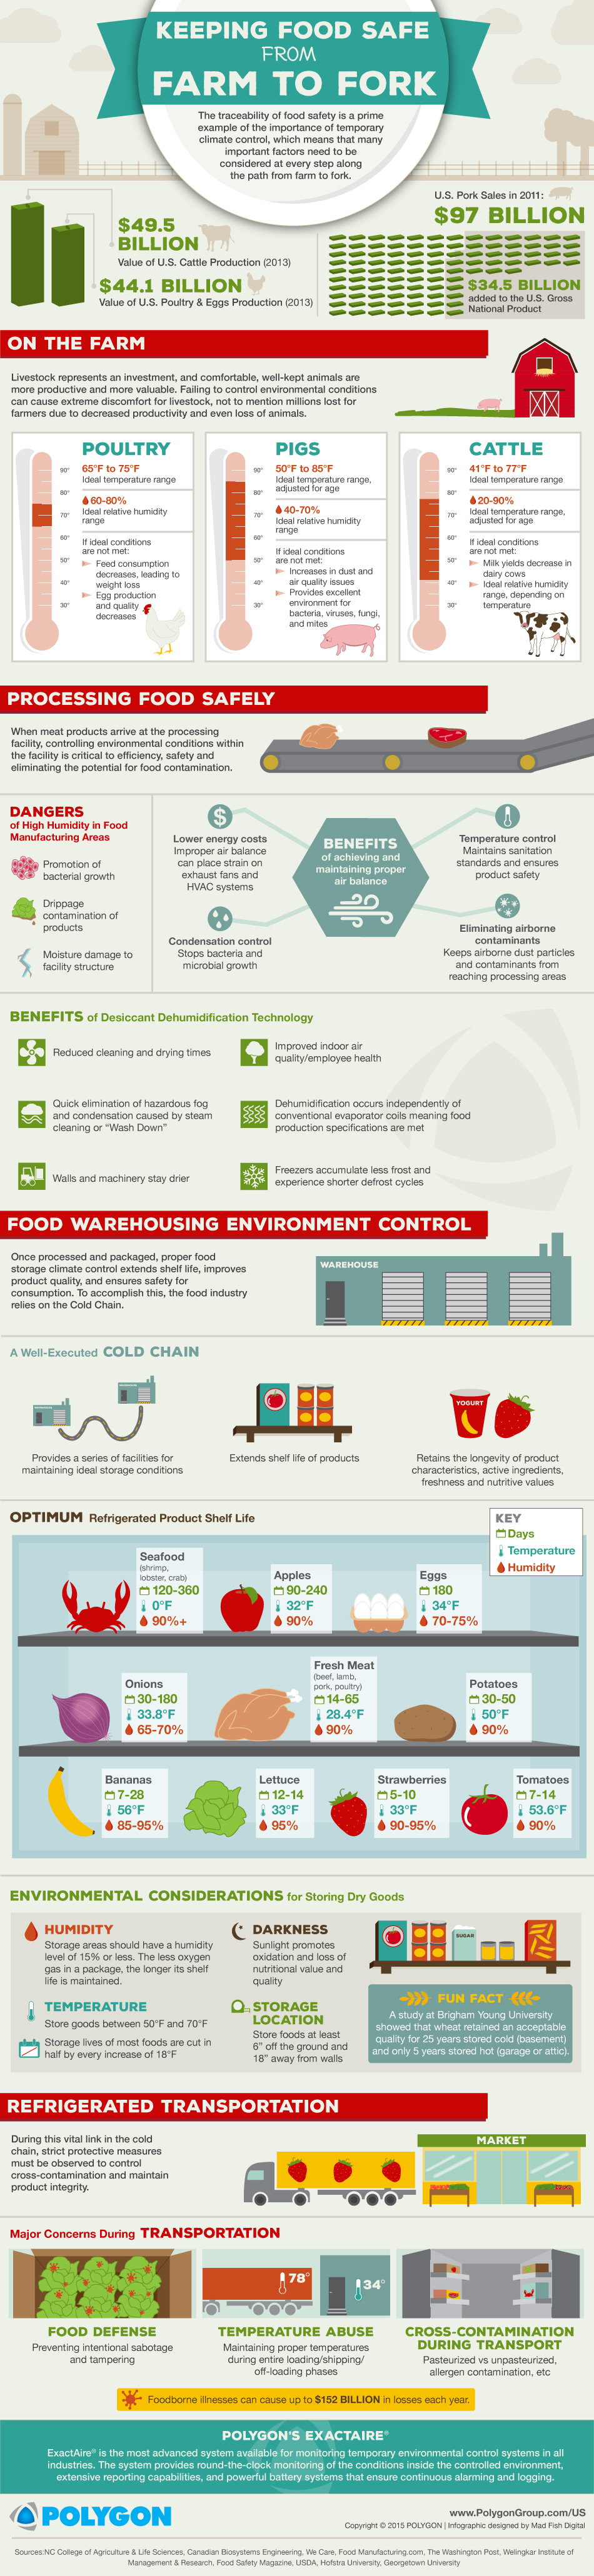 Polygon_Food-Industry_Infographic_Feb-2015.jpg